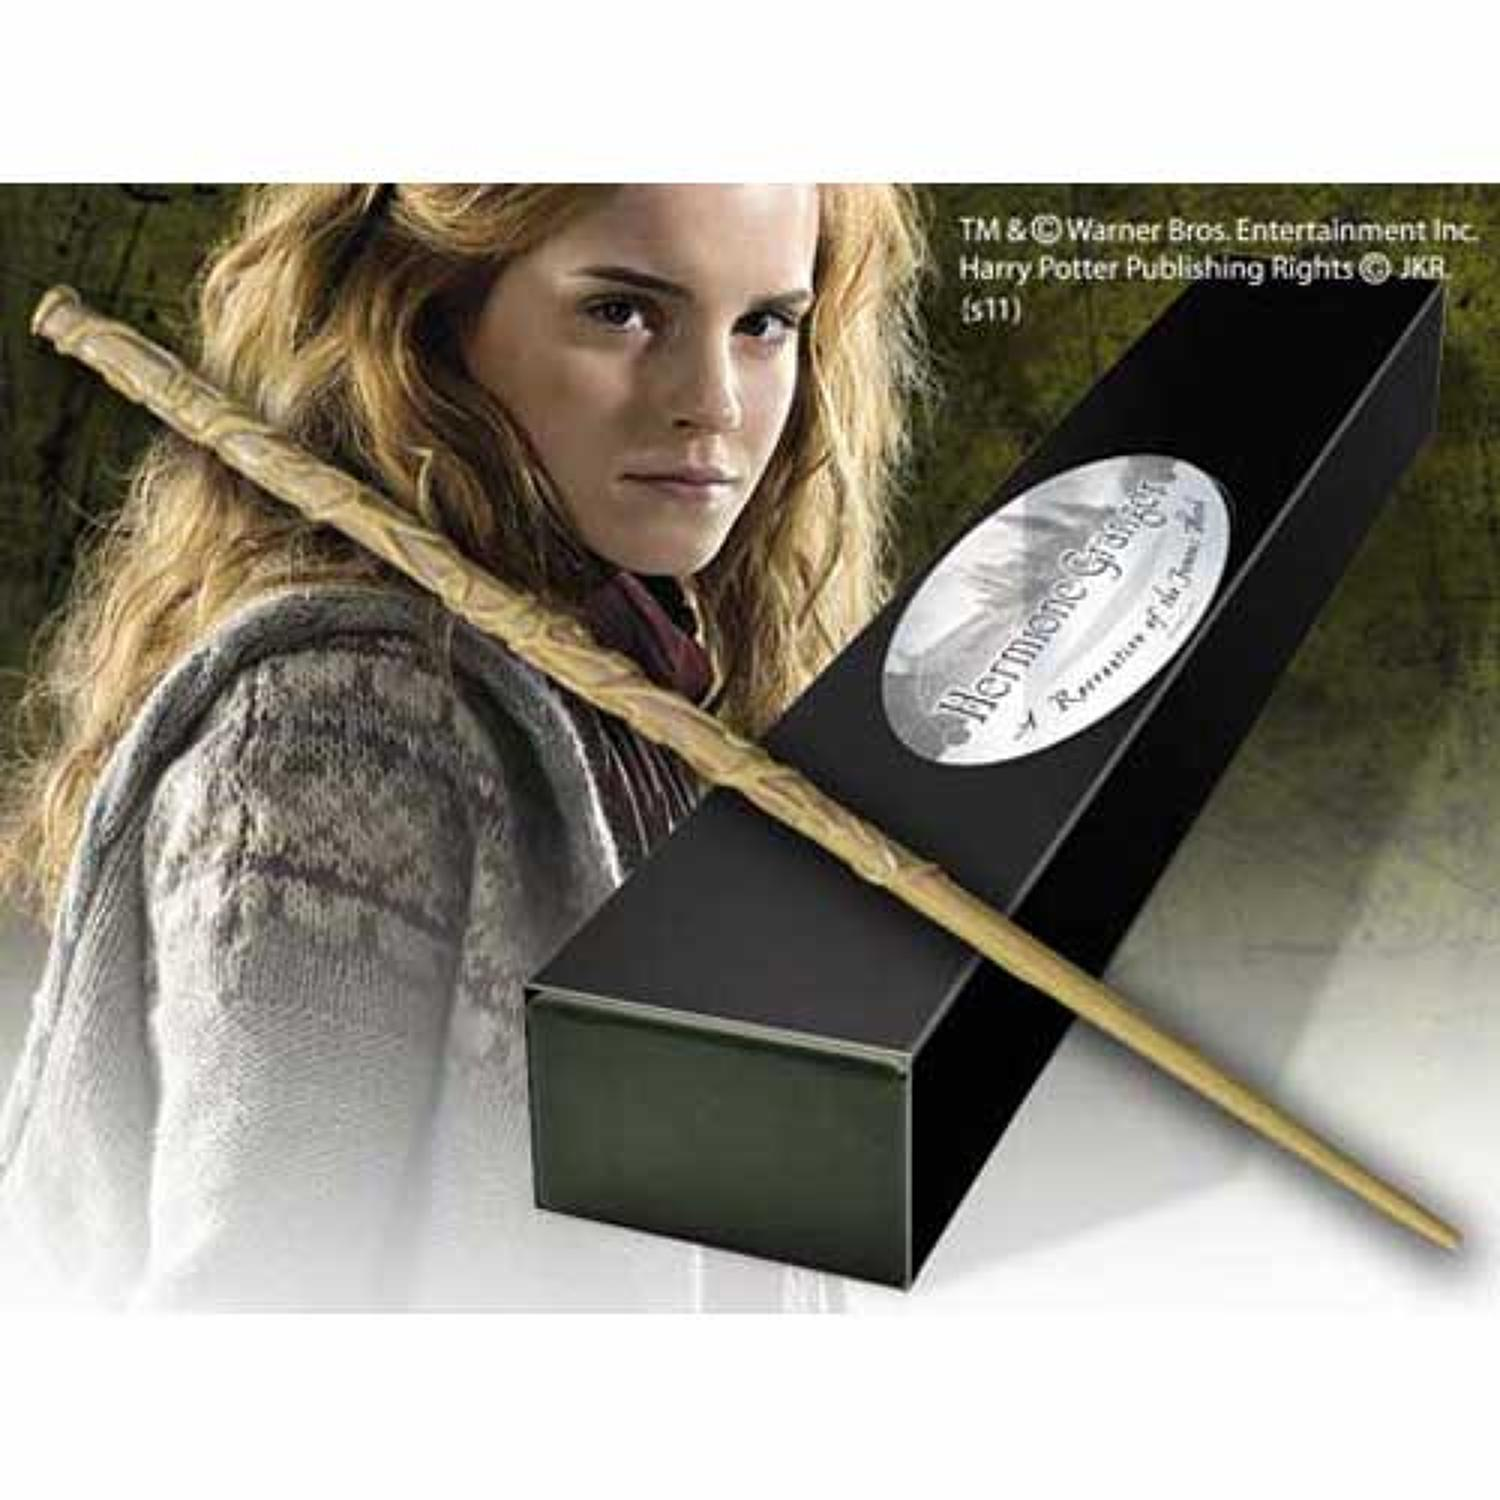 Harry Potter - Hermione's Wand Collector's Replica